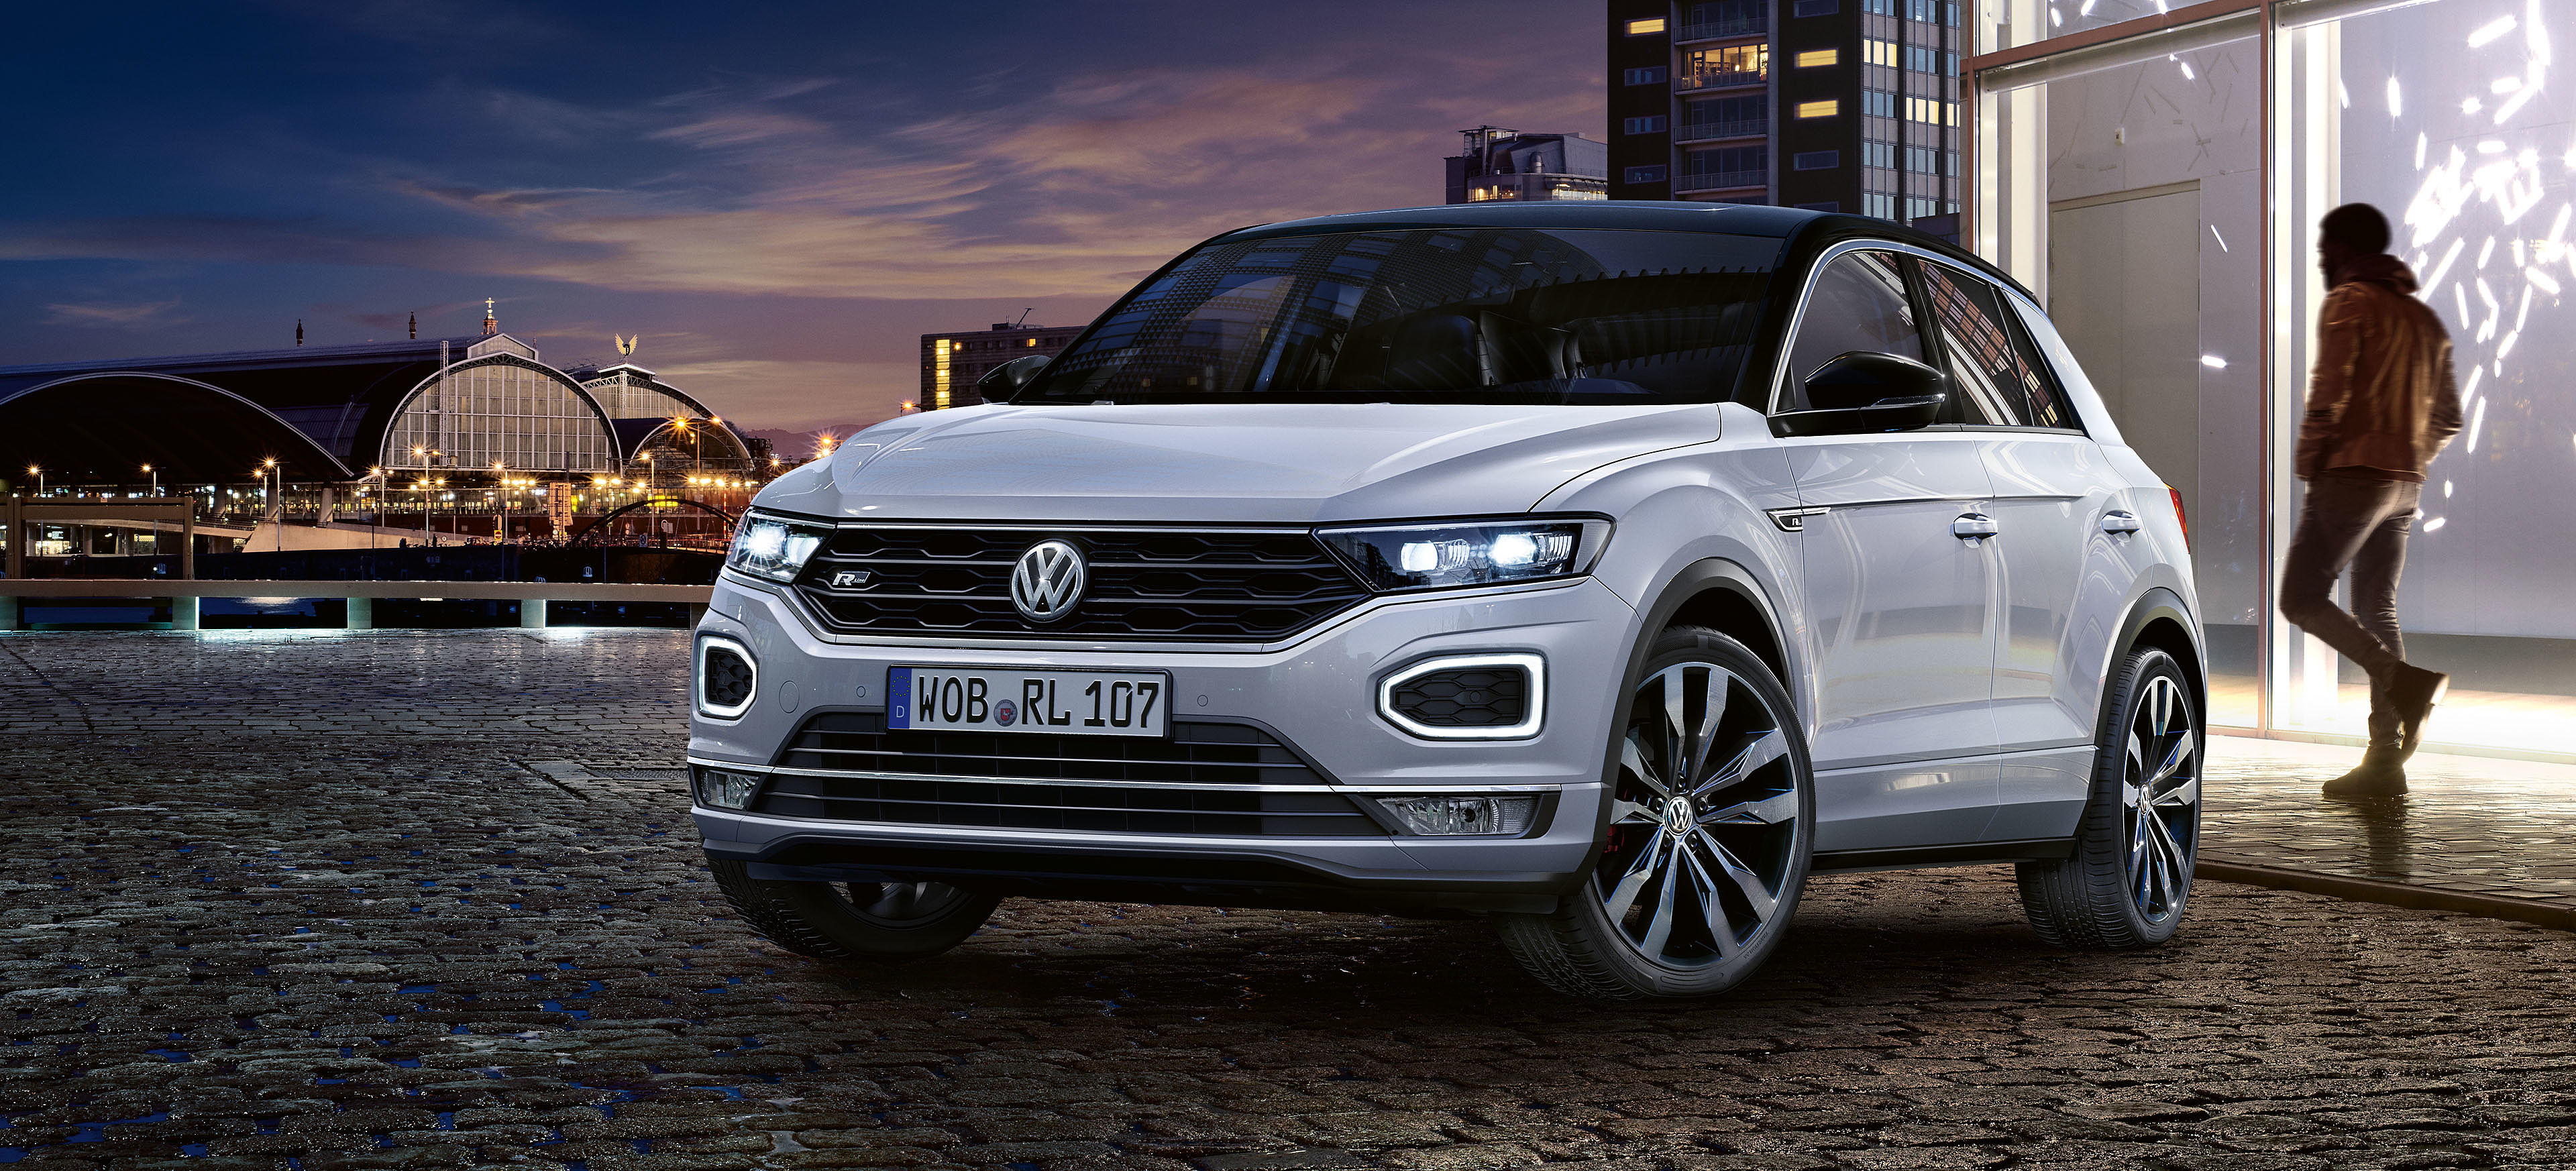 vw t roc r line leasing angebote ohne anzahlung g nstige neuwagen. Black Bedroom Furniture Sets. Home Design Ideas